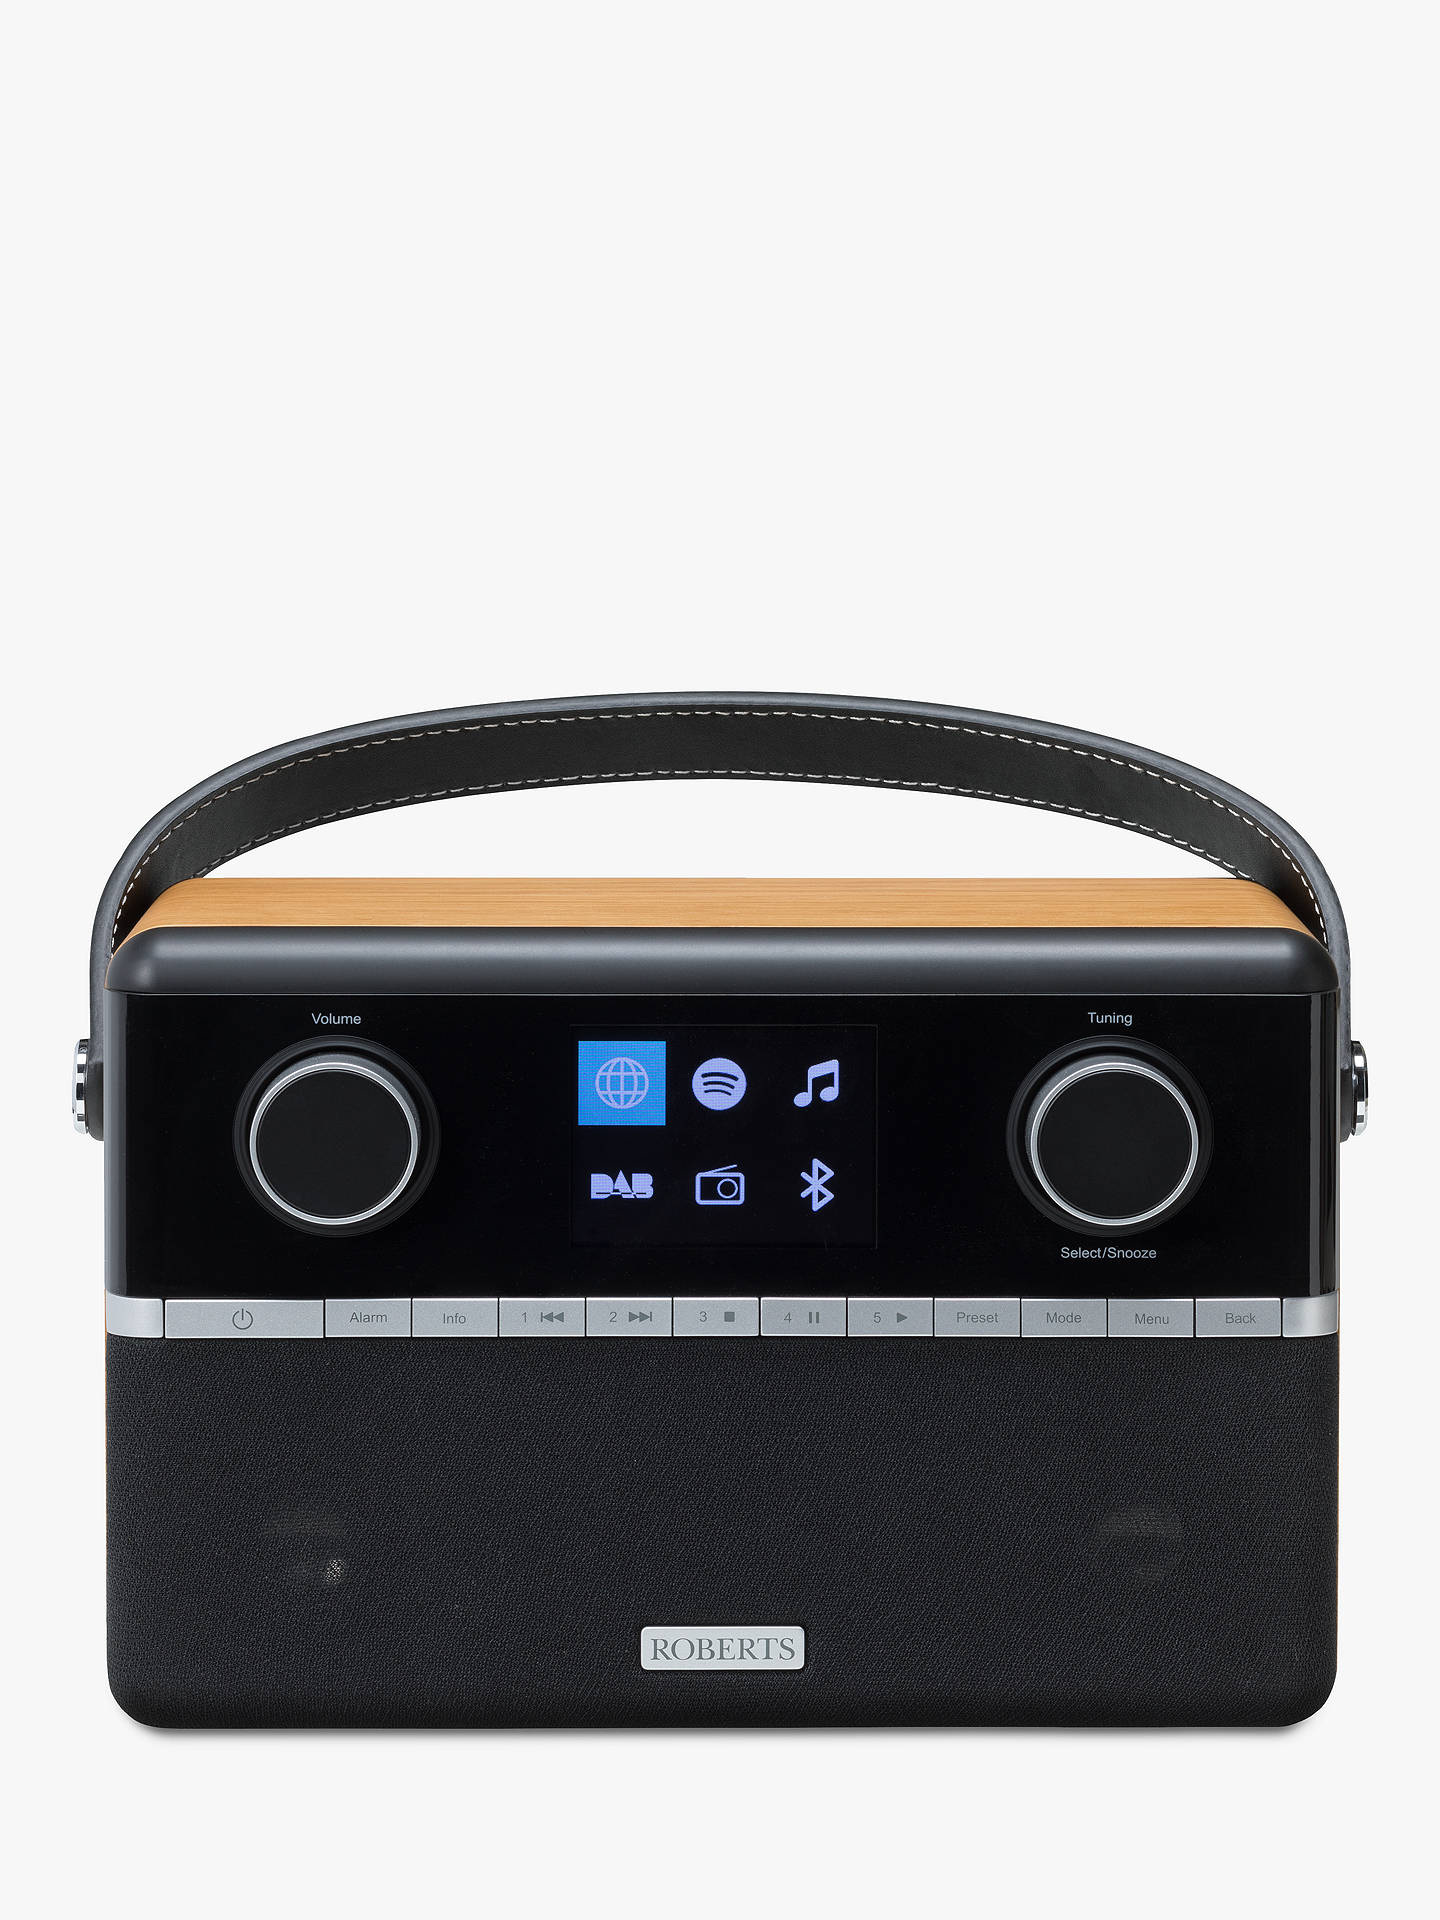 Buy ROBERTS Stream 94i DAB+/FM/Internet Smart Radio with Bluetooth, Black/Wood Online at johnlewis.com